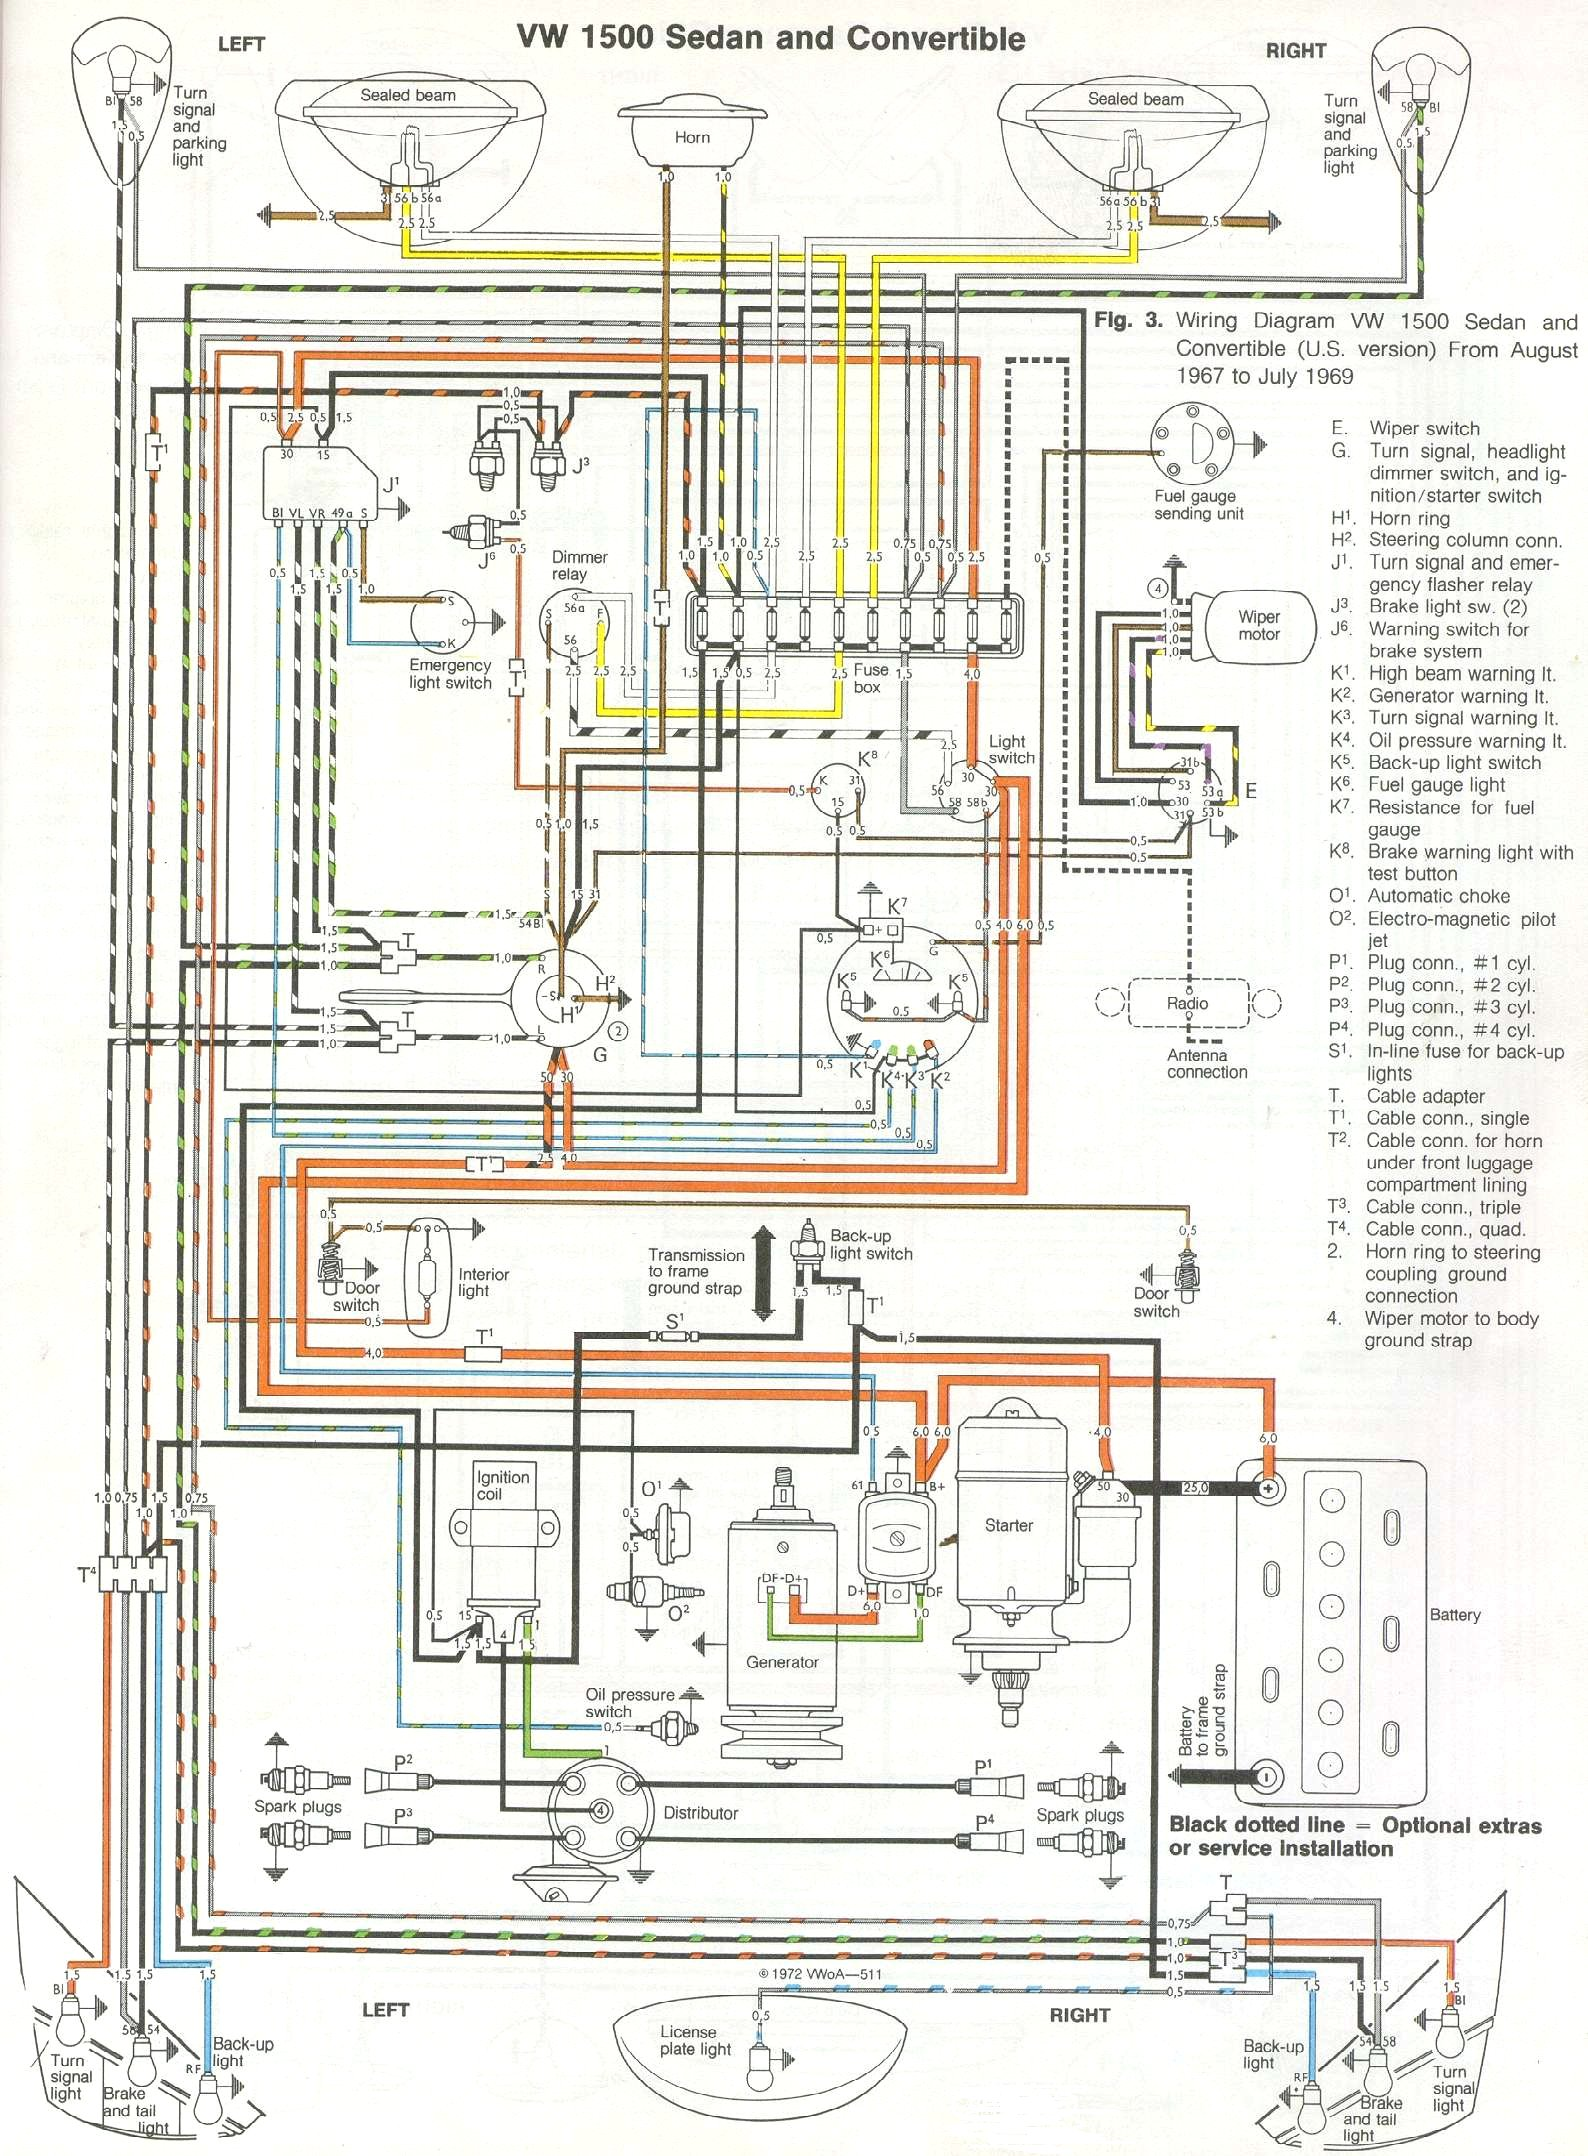 bug_6869 1969 71 beetle wiring diagram thegoldenbug com 1968 vw bus wiring diagram at bakdesigns.co